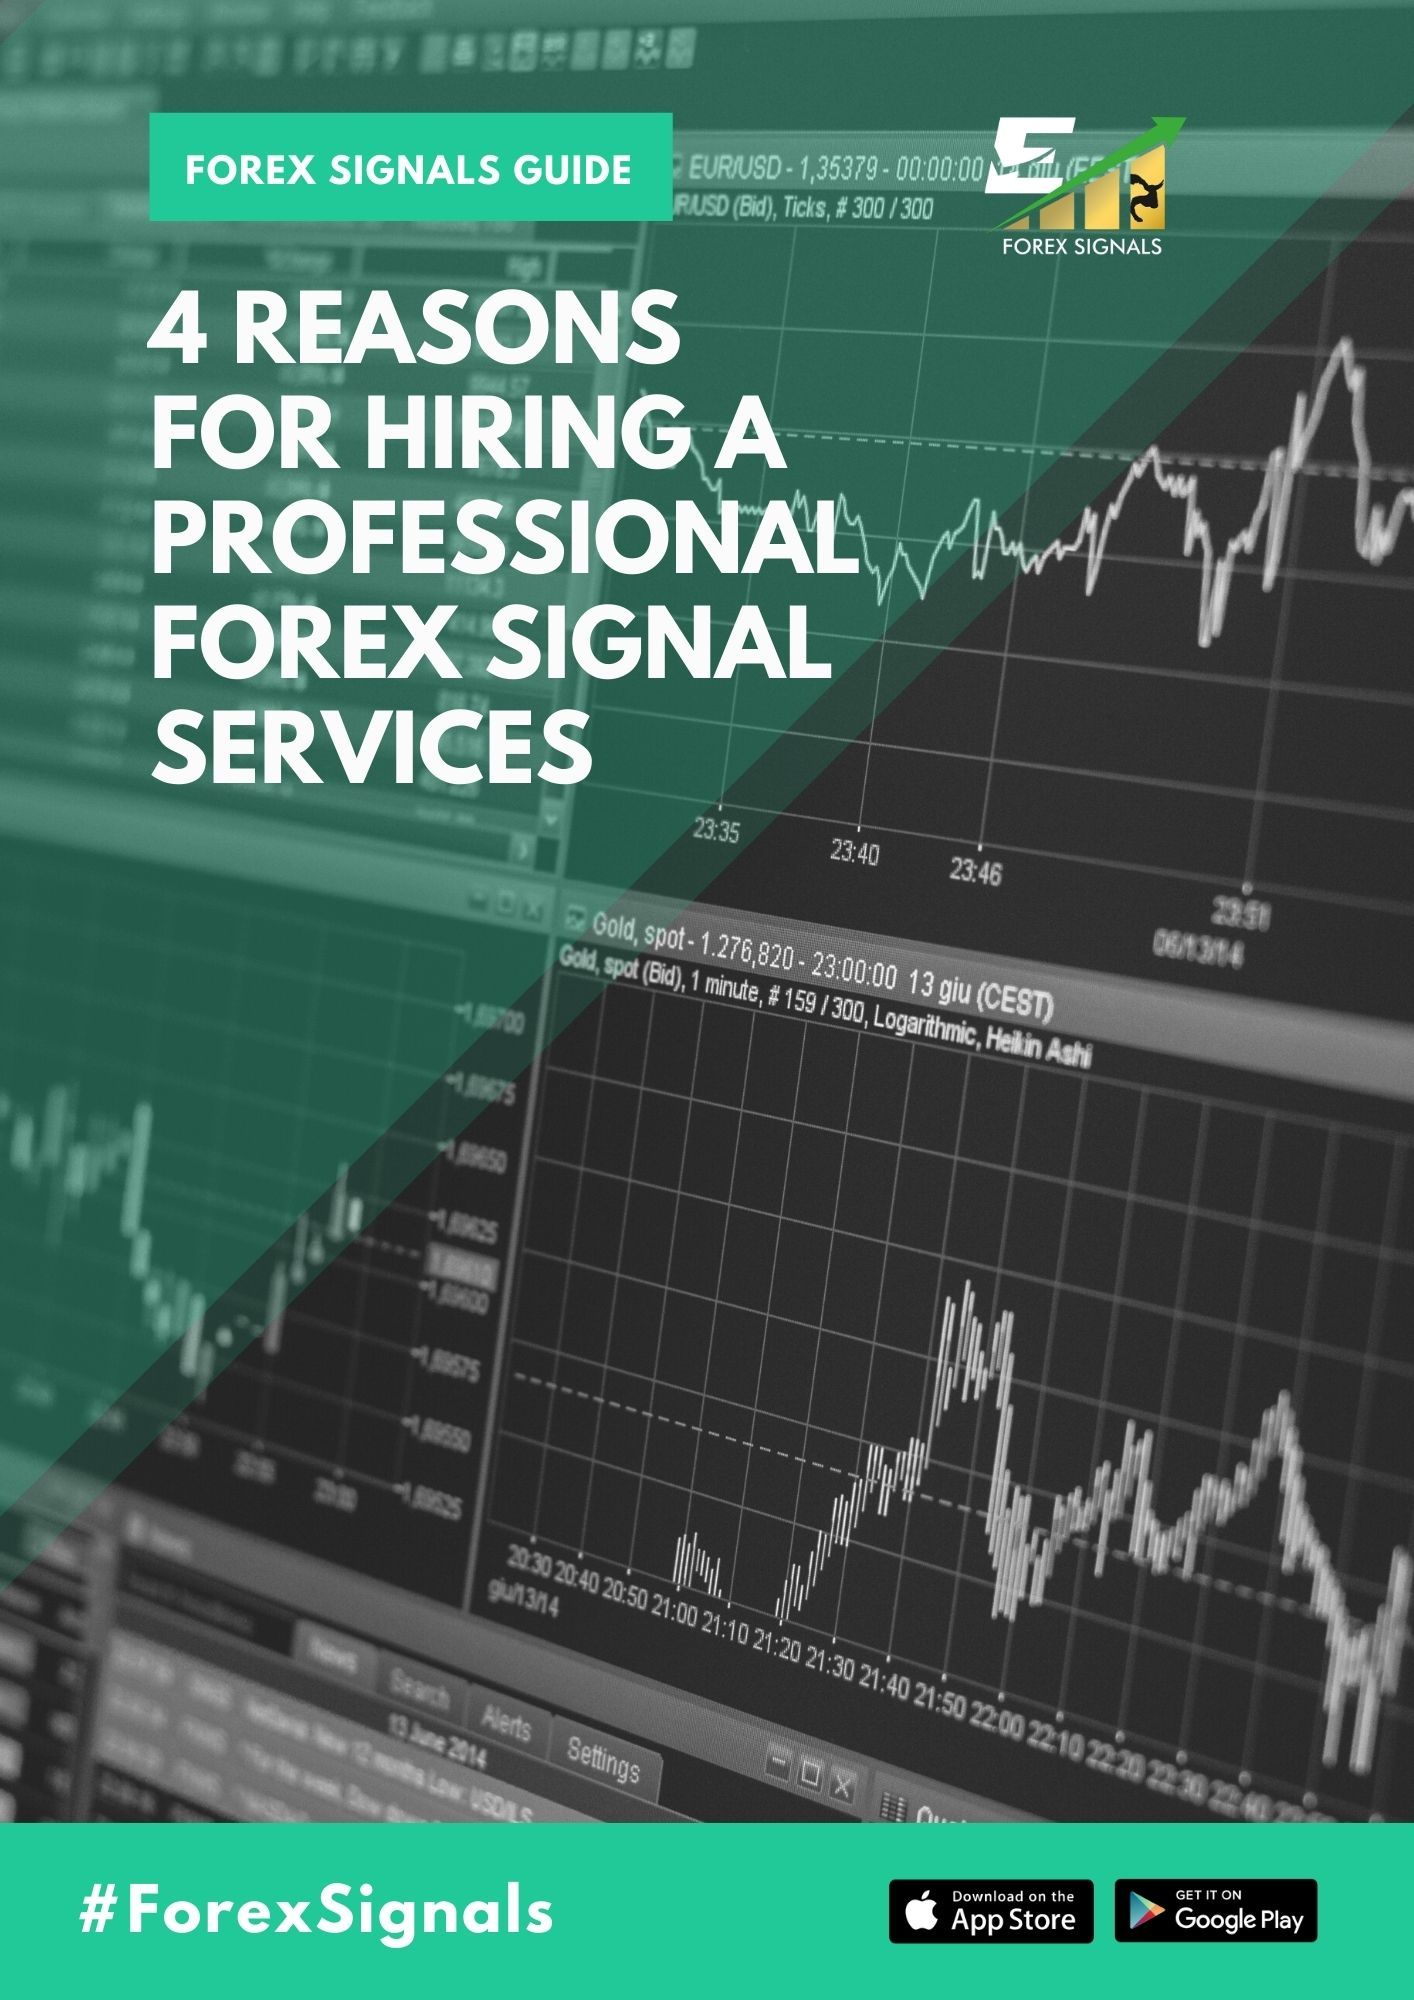 Ppt 4 Reasons For Hiring A Professional Forex Signal Services Slideshare In 2020 Forex Signals Forex Forex Trading Signals